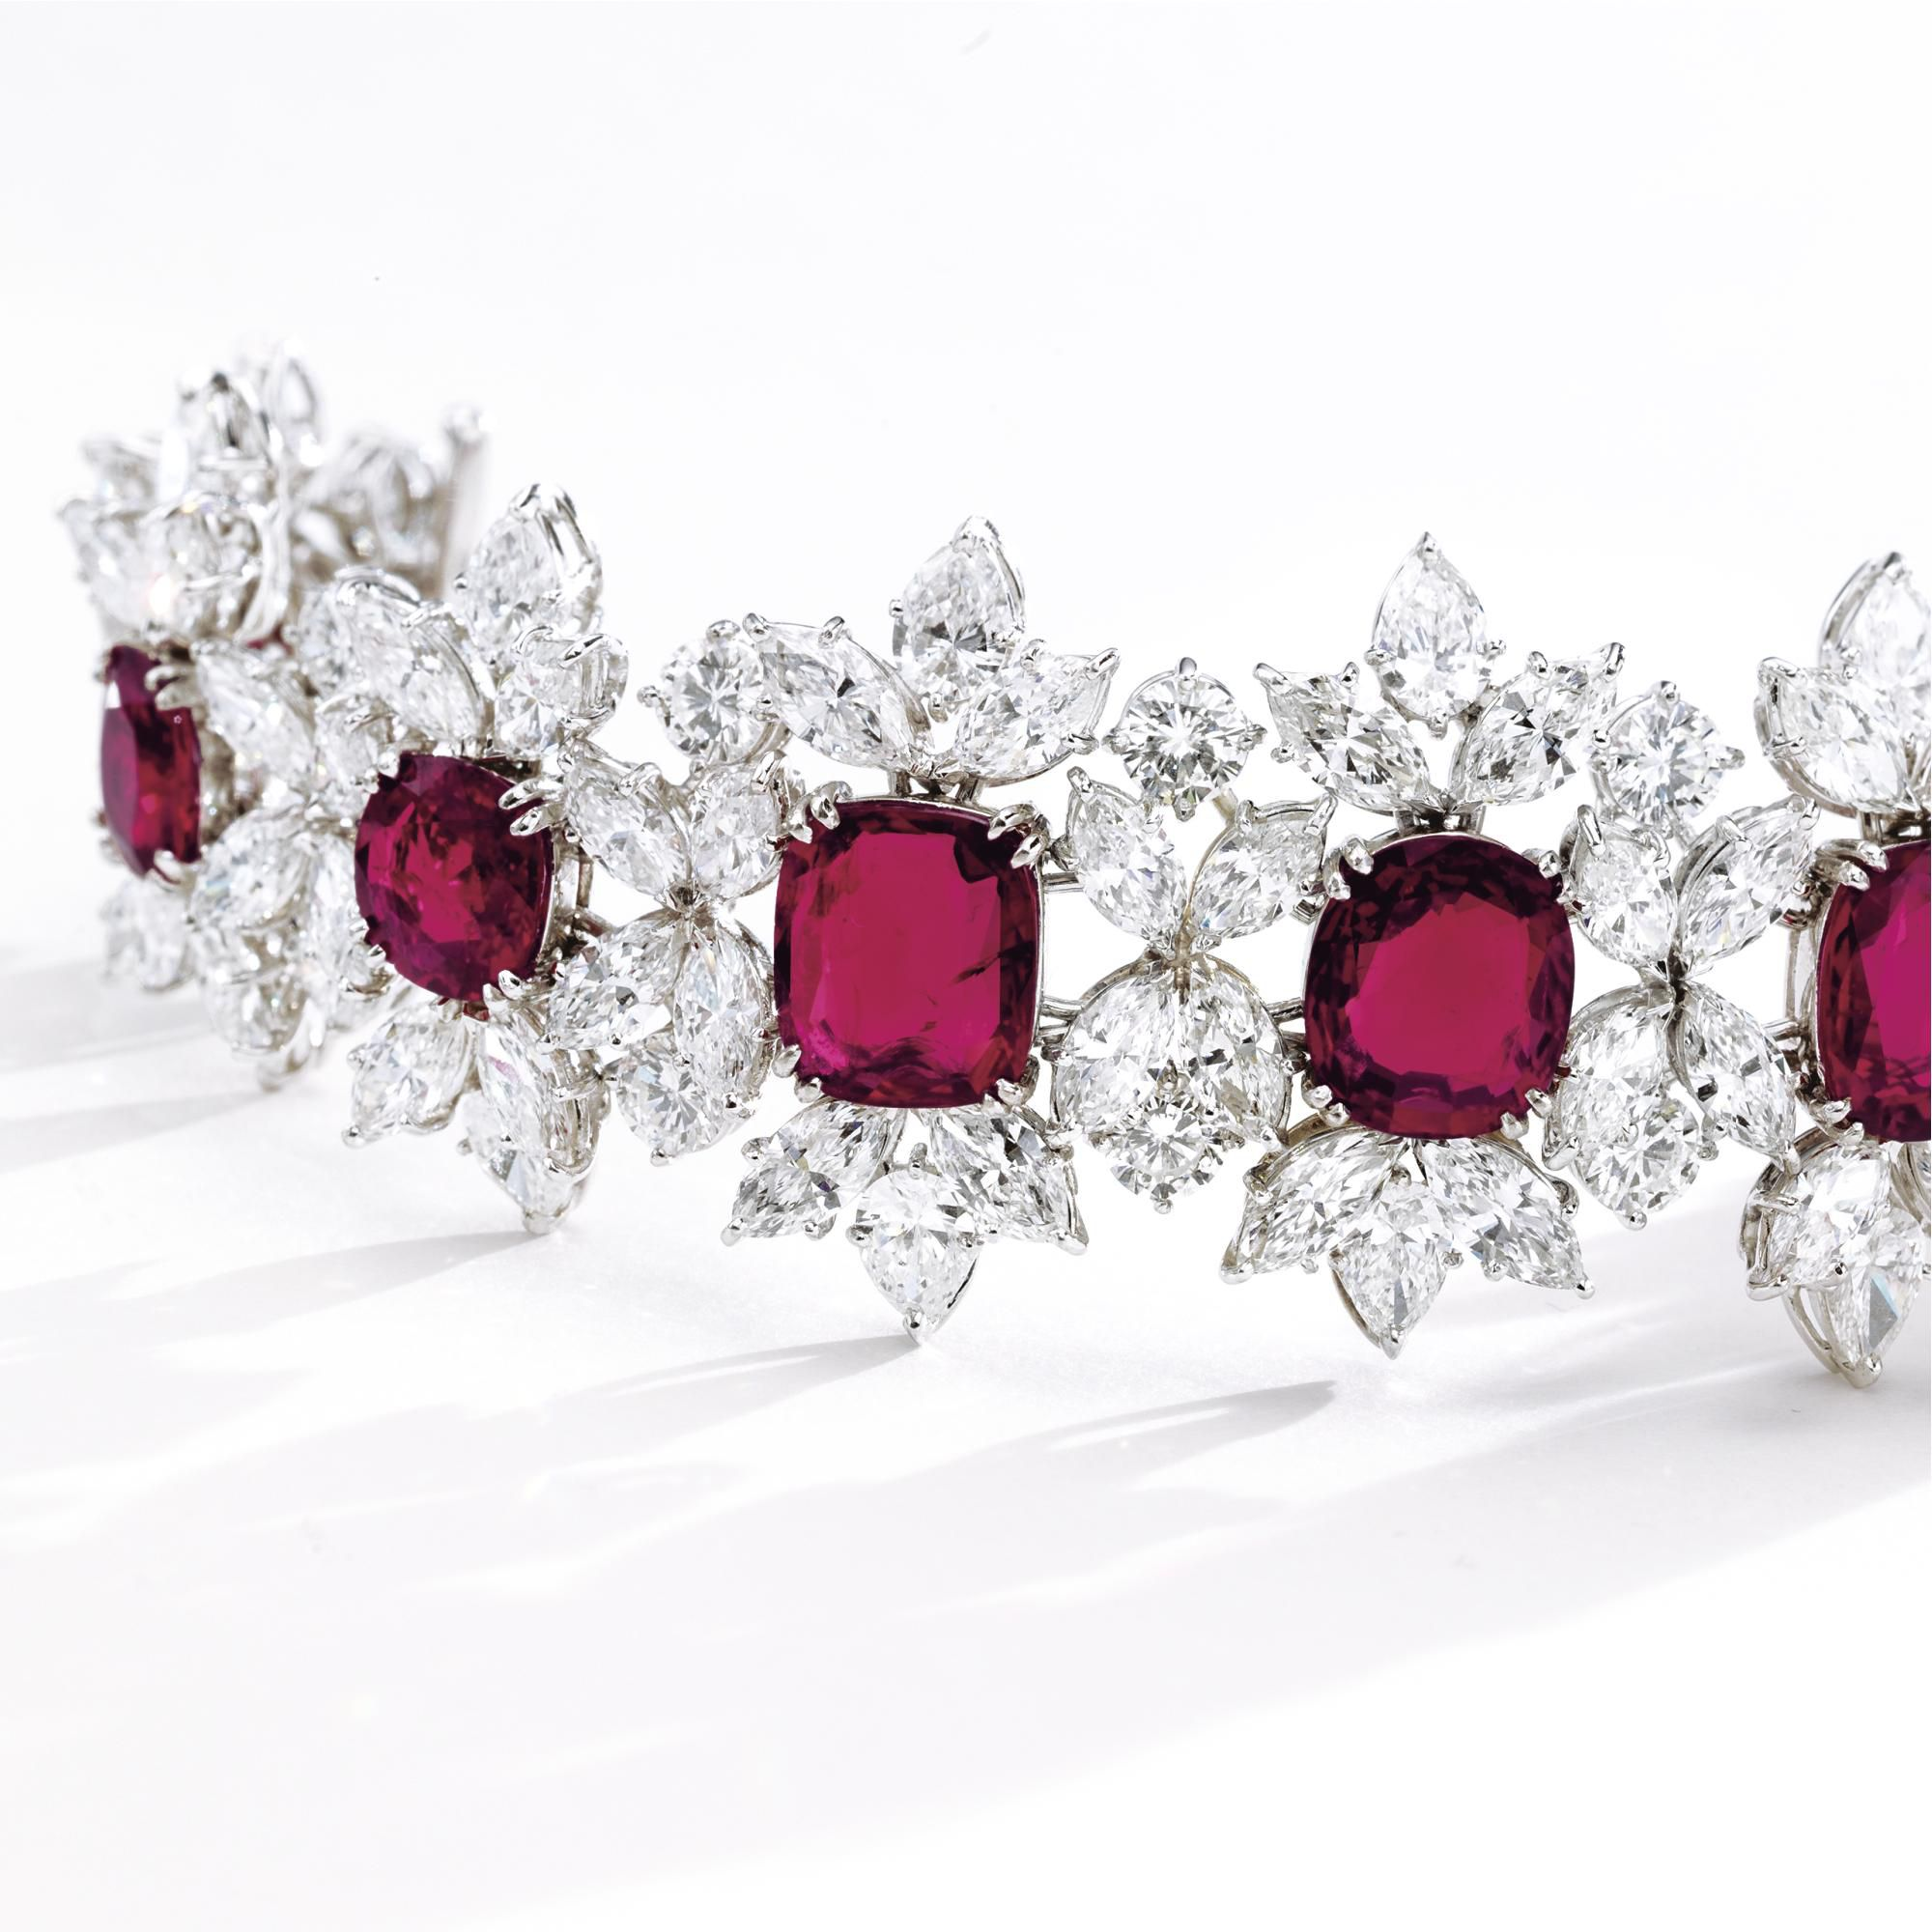 RUBY AND DIAMOND BRACELET, HARRY WINSTON, CIRCA 1960 Designed as a series of floral clusters slightly graduating in size from the center, set with 10 cushion-shaped rubies weighing approximately 30.28 carats, framed by 20 pear-shaped, 80 marquise-shaped and 20 round diamonds weighing a total of approximately 43.00 carats, mounted in platinum, length 7¼ inches, signed Winston and HW.